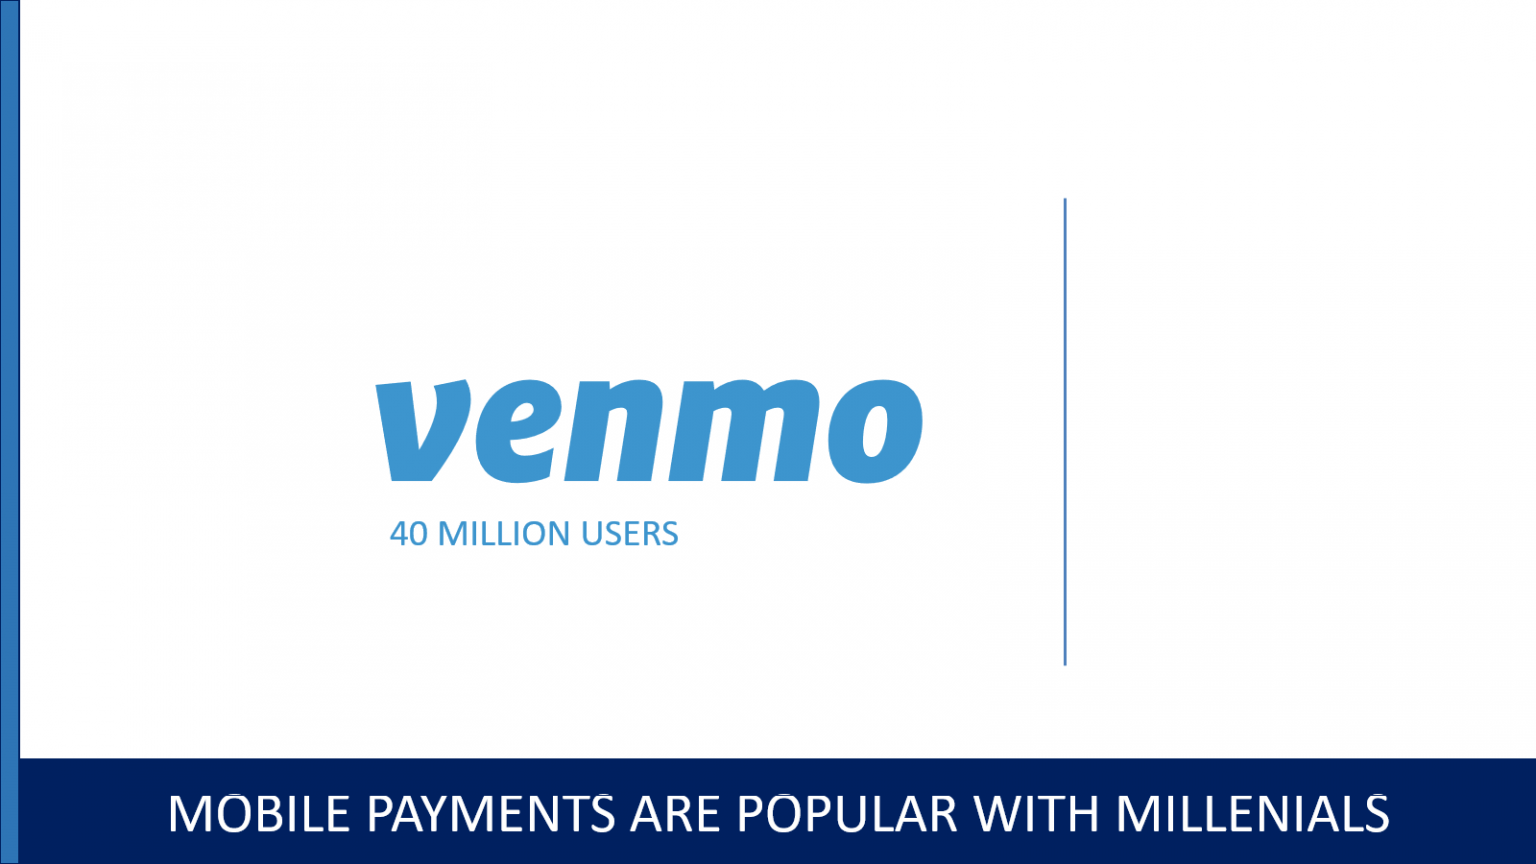 66 - Mobile Payments - Ten10